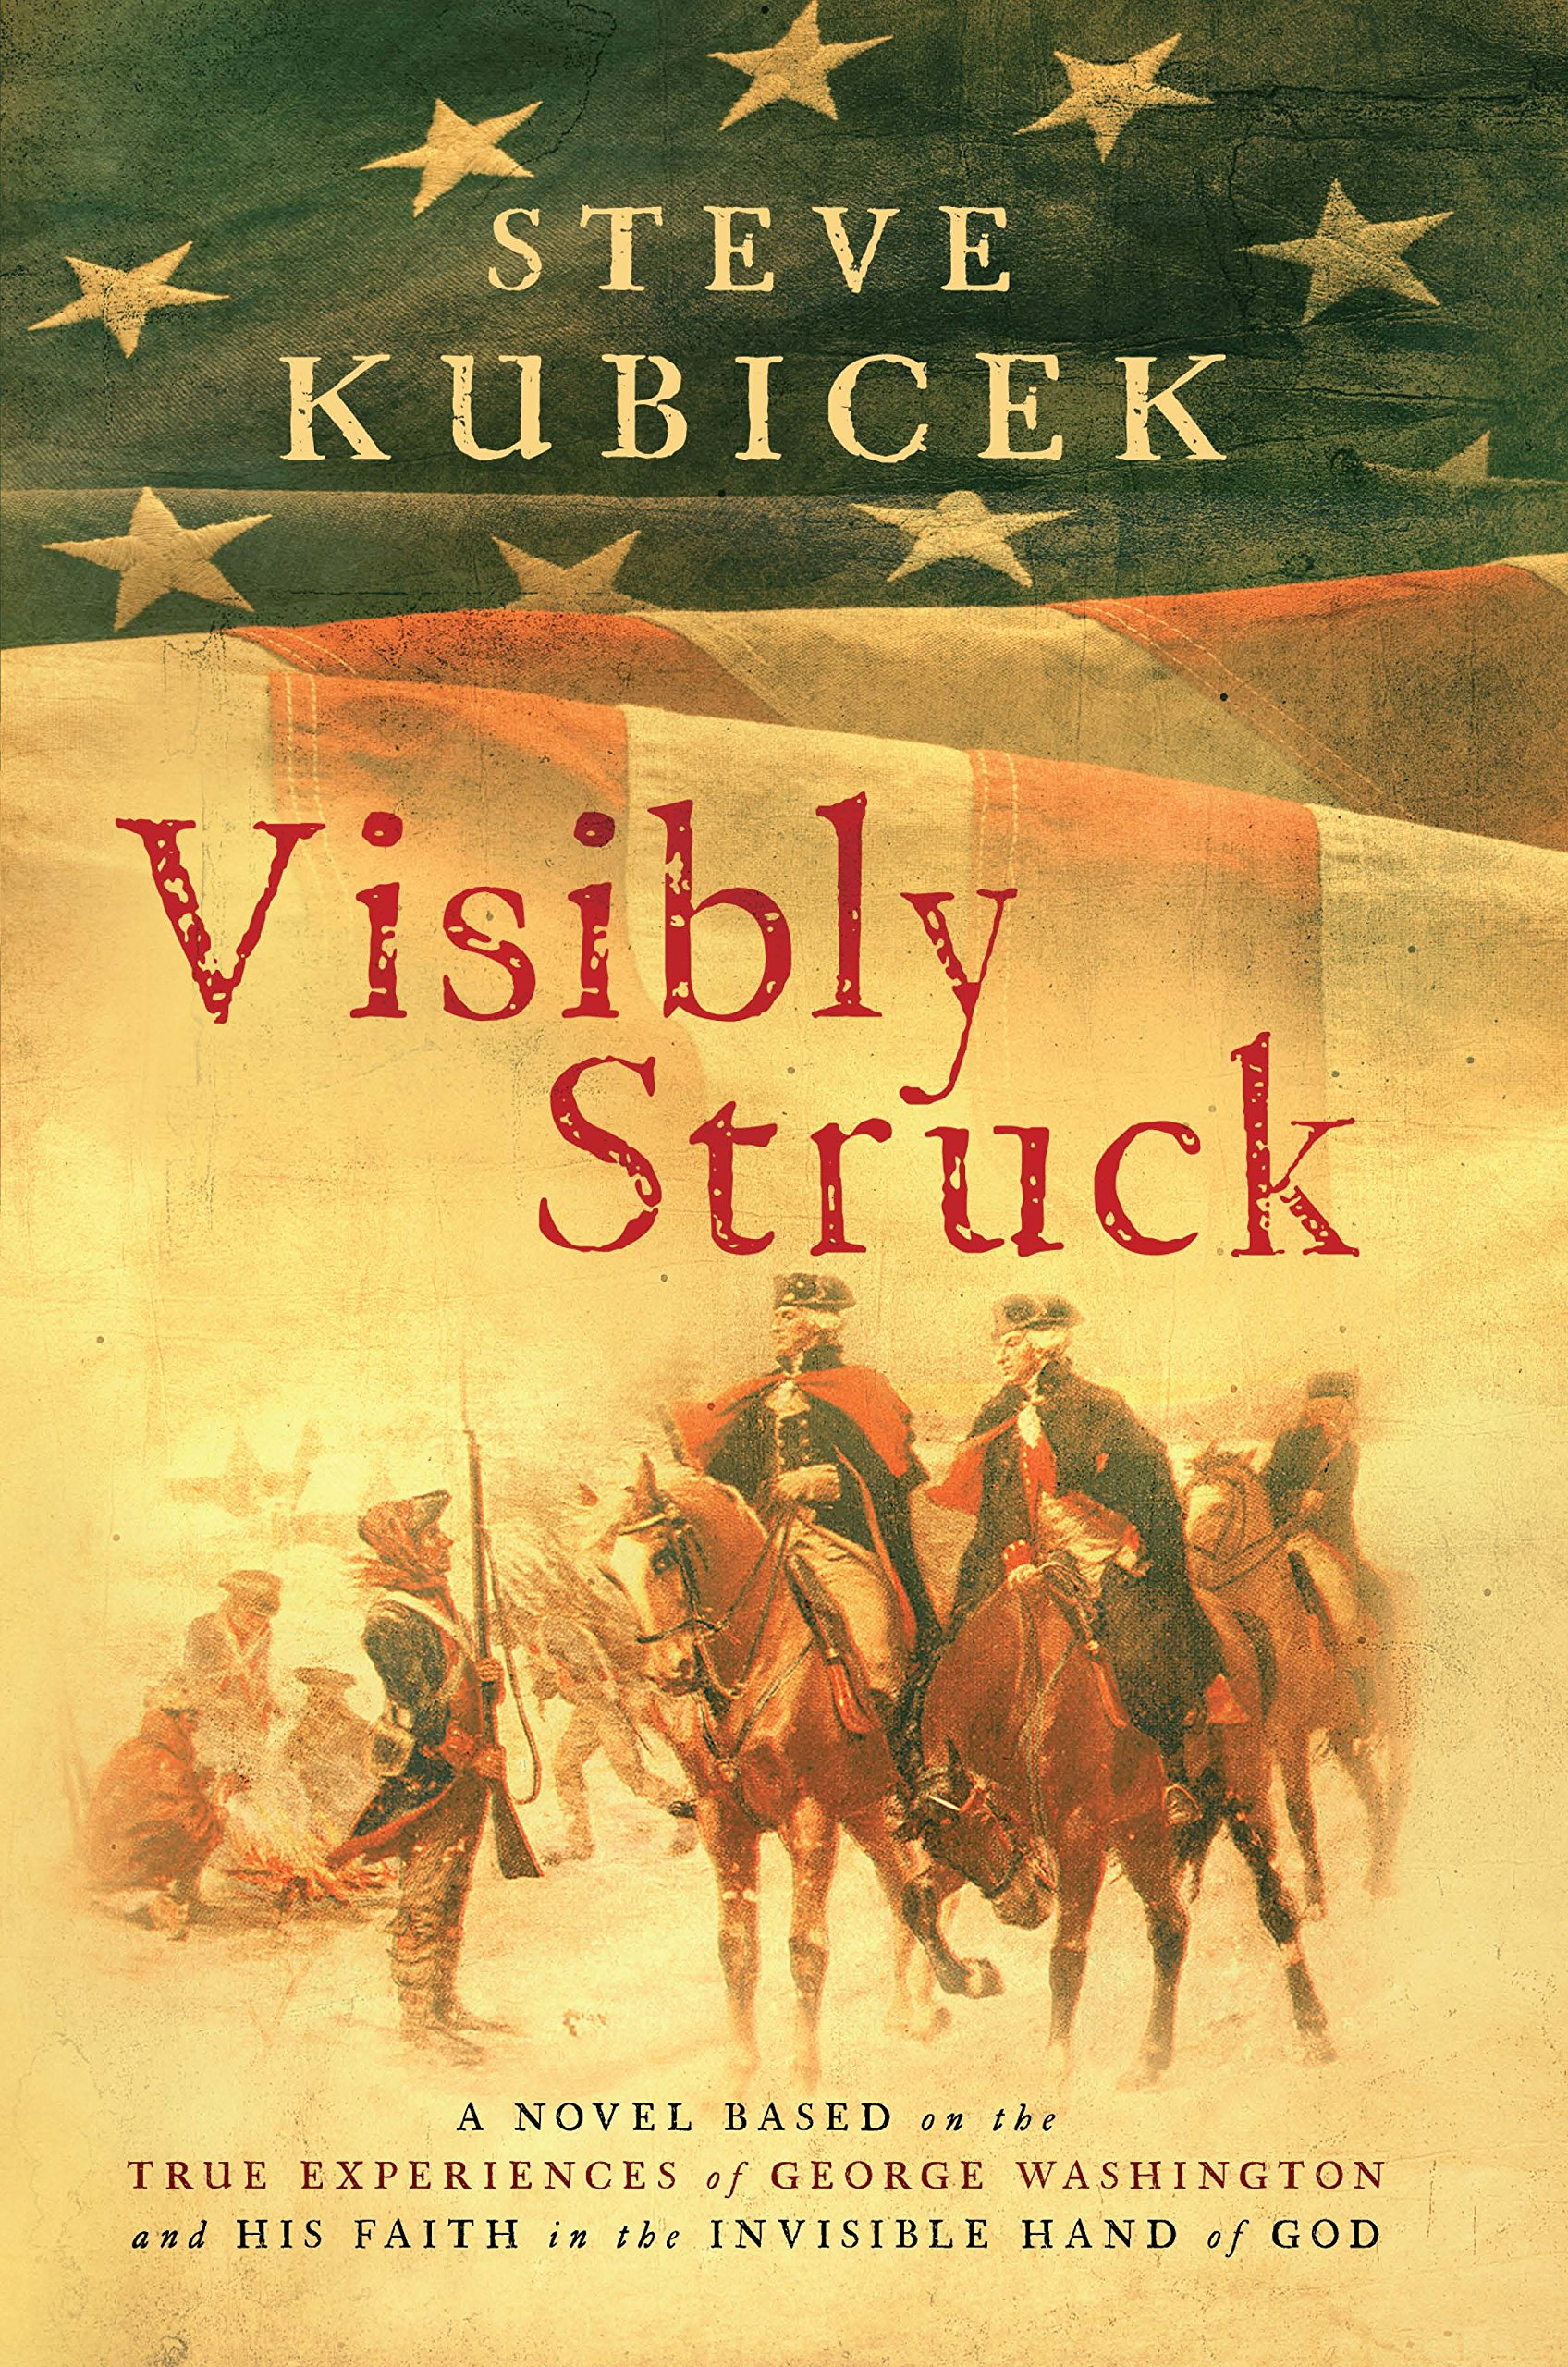 Download Visibly Struck: A Novel Based on the True Experiences of George Washington and His Faith in the Invisible Hand of God PDF